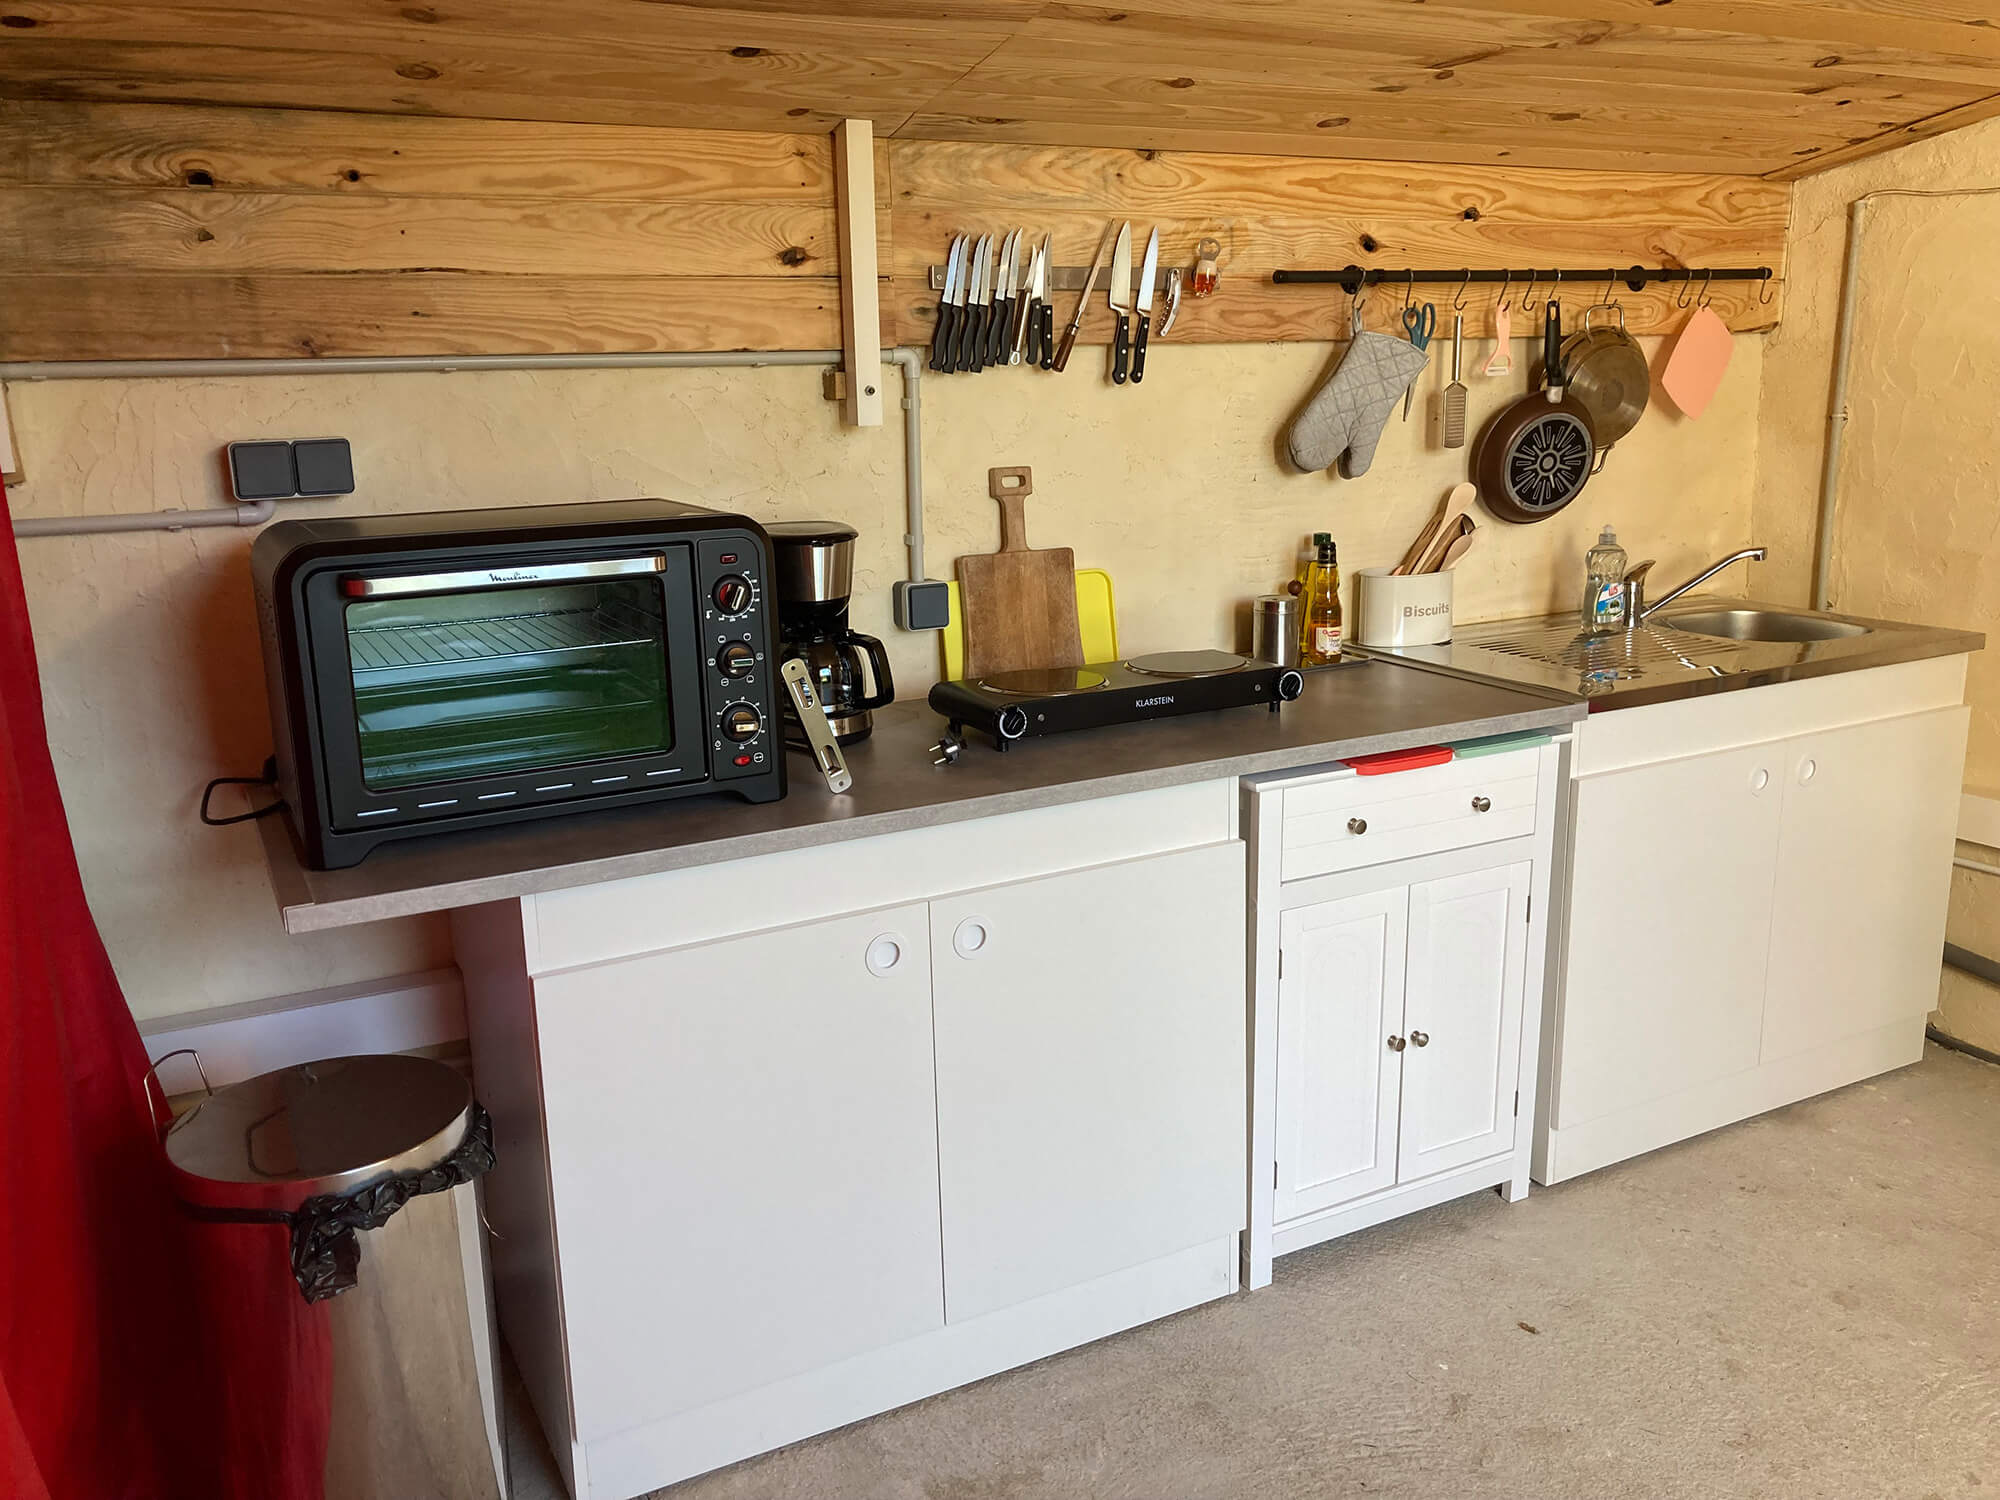 Summer kitchen only for guests